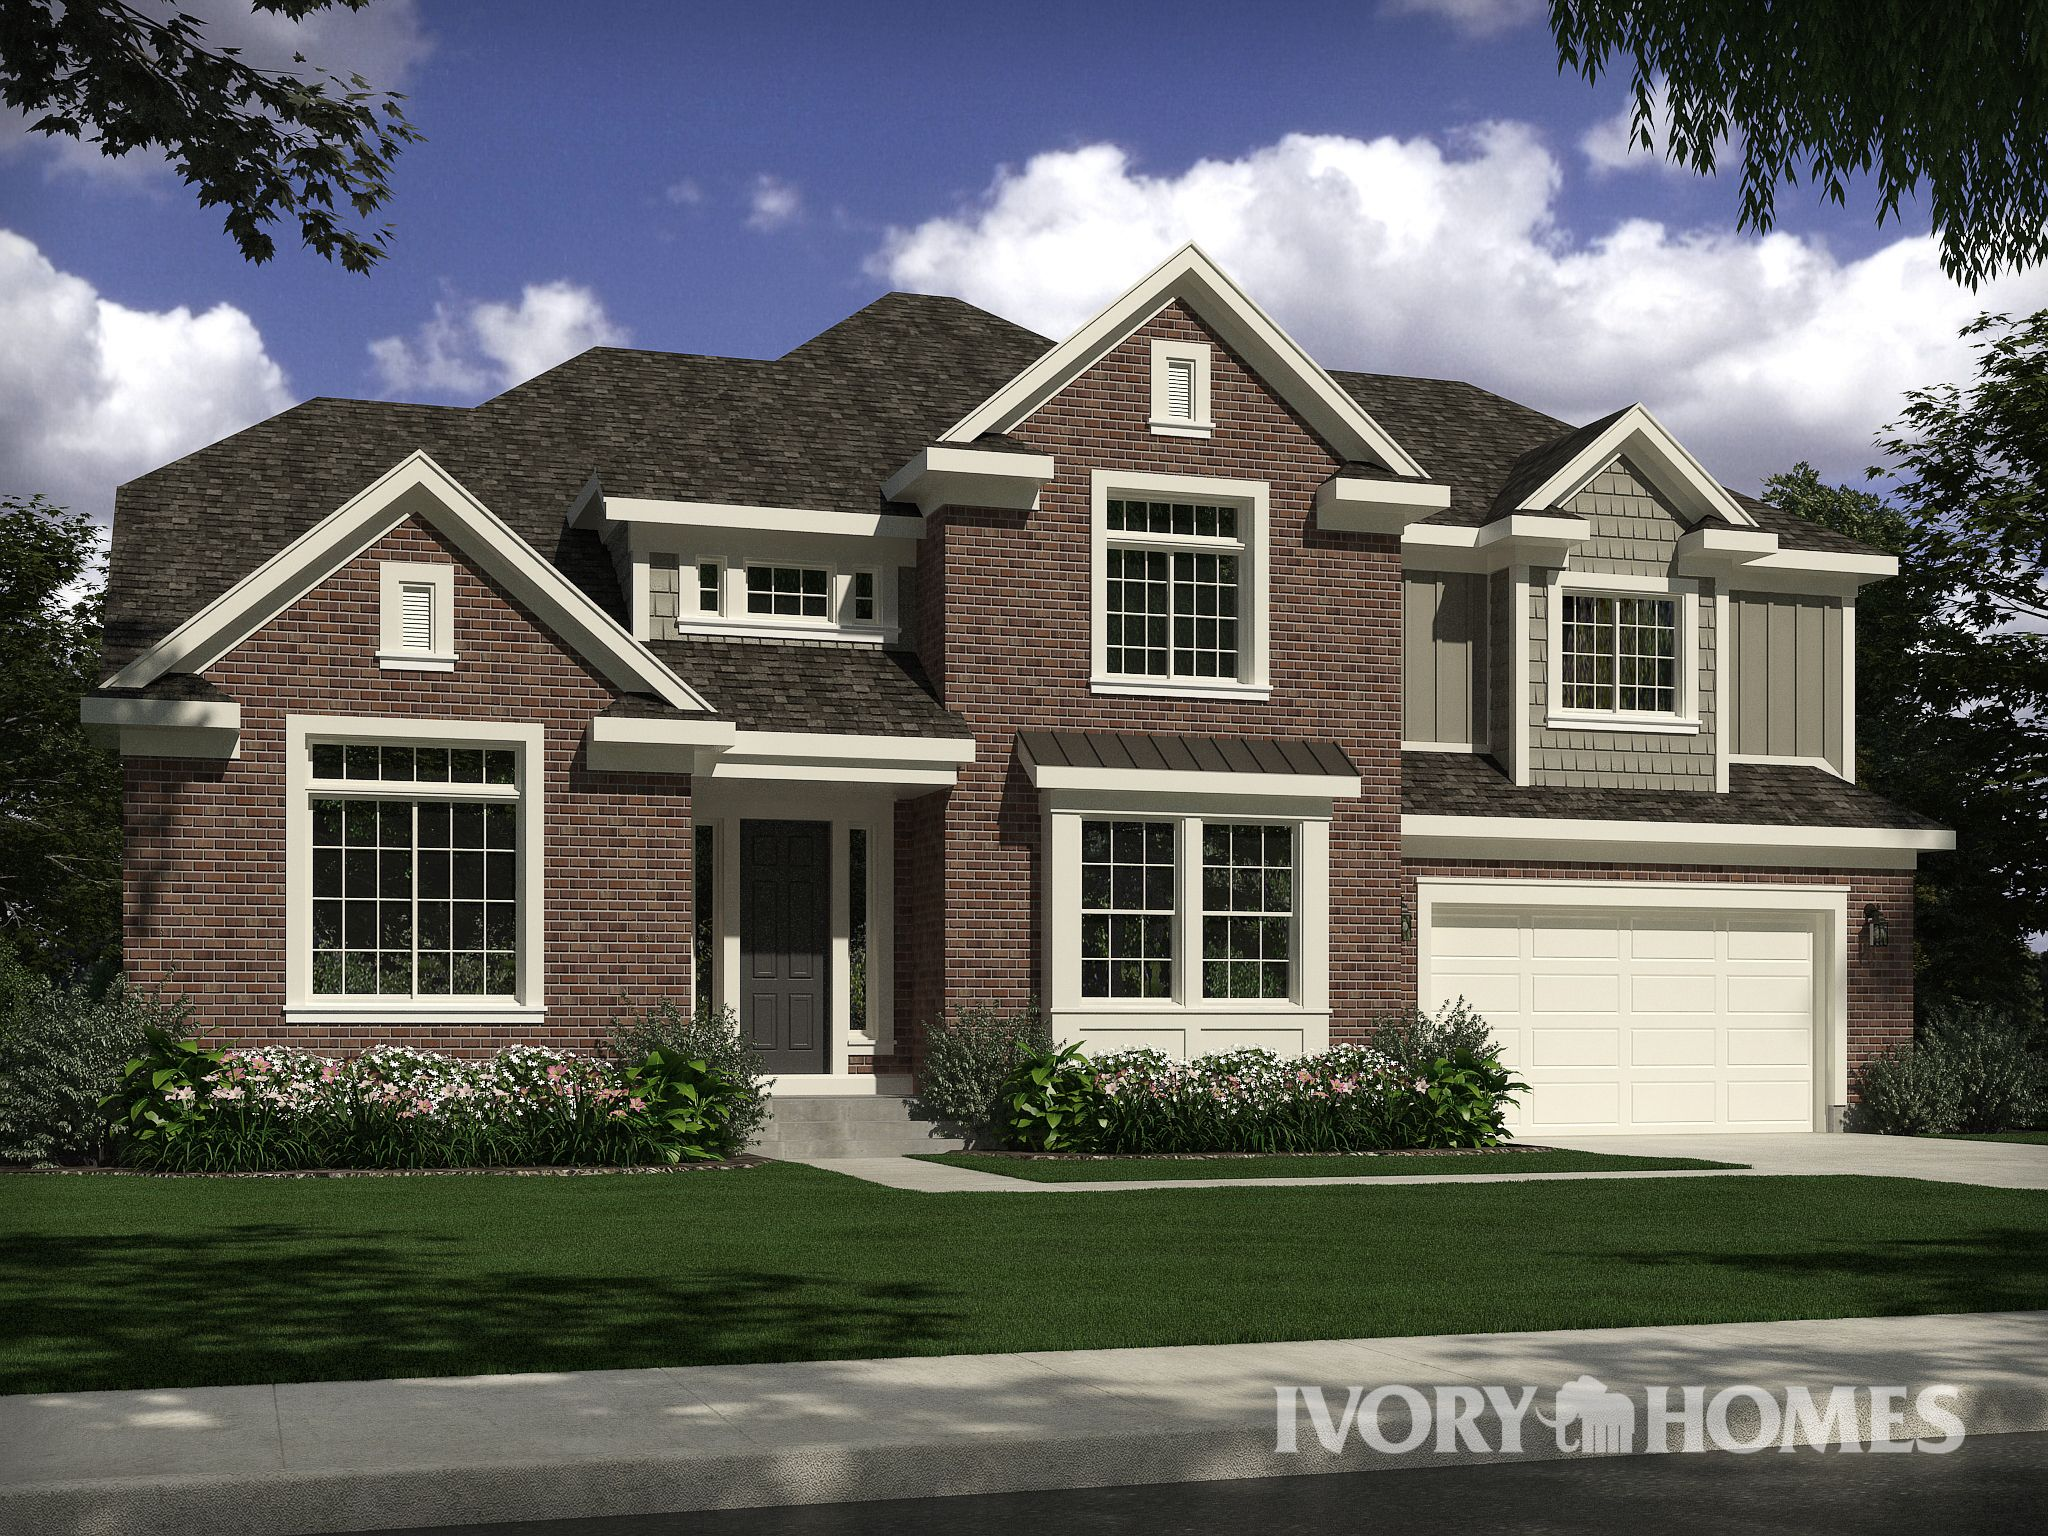 Tuscany Traditional Model by Ivory Homes - New Homes of Utah on beautiful homes floor plans, colonial style homes floor plans, granite homes floor plans, house floor plans, reliance homes floor plans, liberty homes floor plans, antares homes floor plans, utah home floor plans, design tech homes floor plans, sego homes floor plans, jade homes floor plans, first texas homes floor plans, onyx homes floor plans, ideal homes floor plans, family floor plans, rambler floor plans, sunset homes floor plans, crystal homes floor plans, palmer homes floor plans,